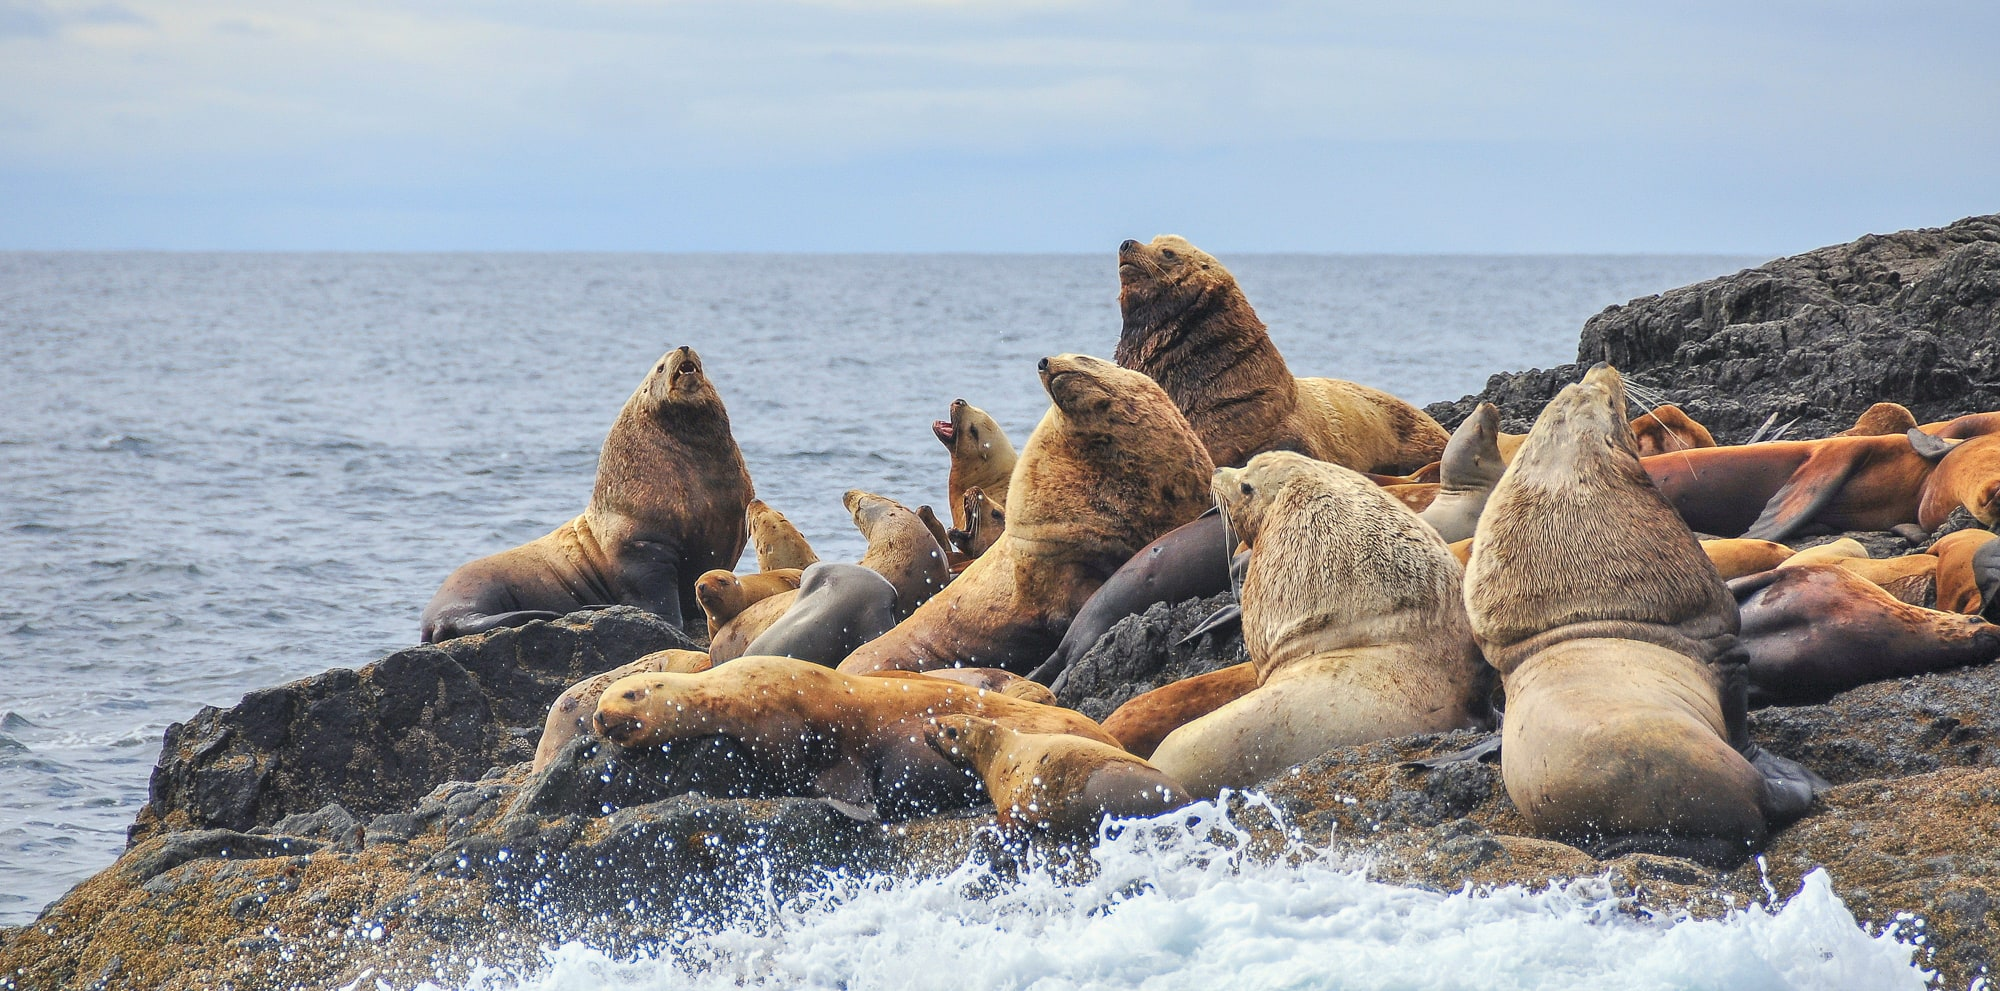 Colony of Steller sea lions crowded together on rock with huge males sitting up